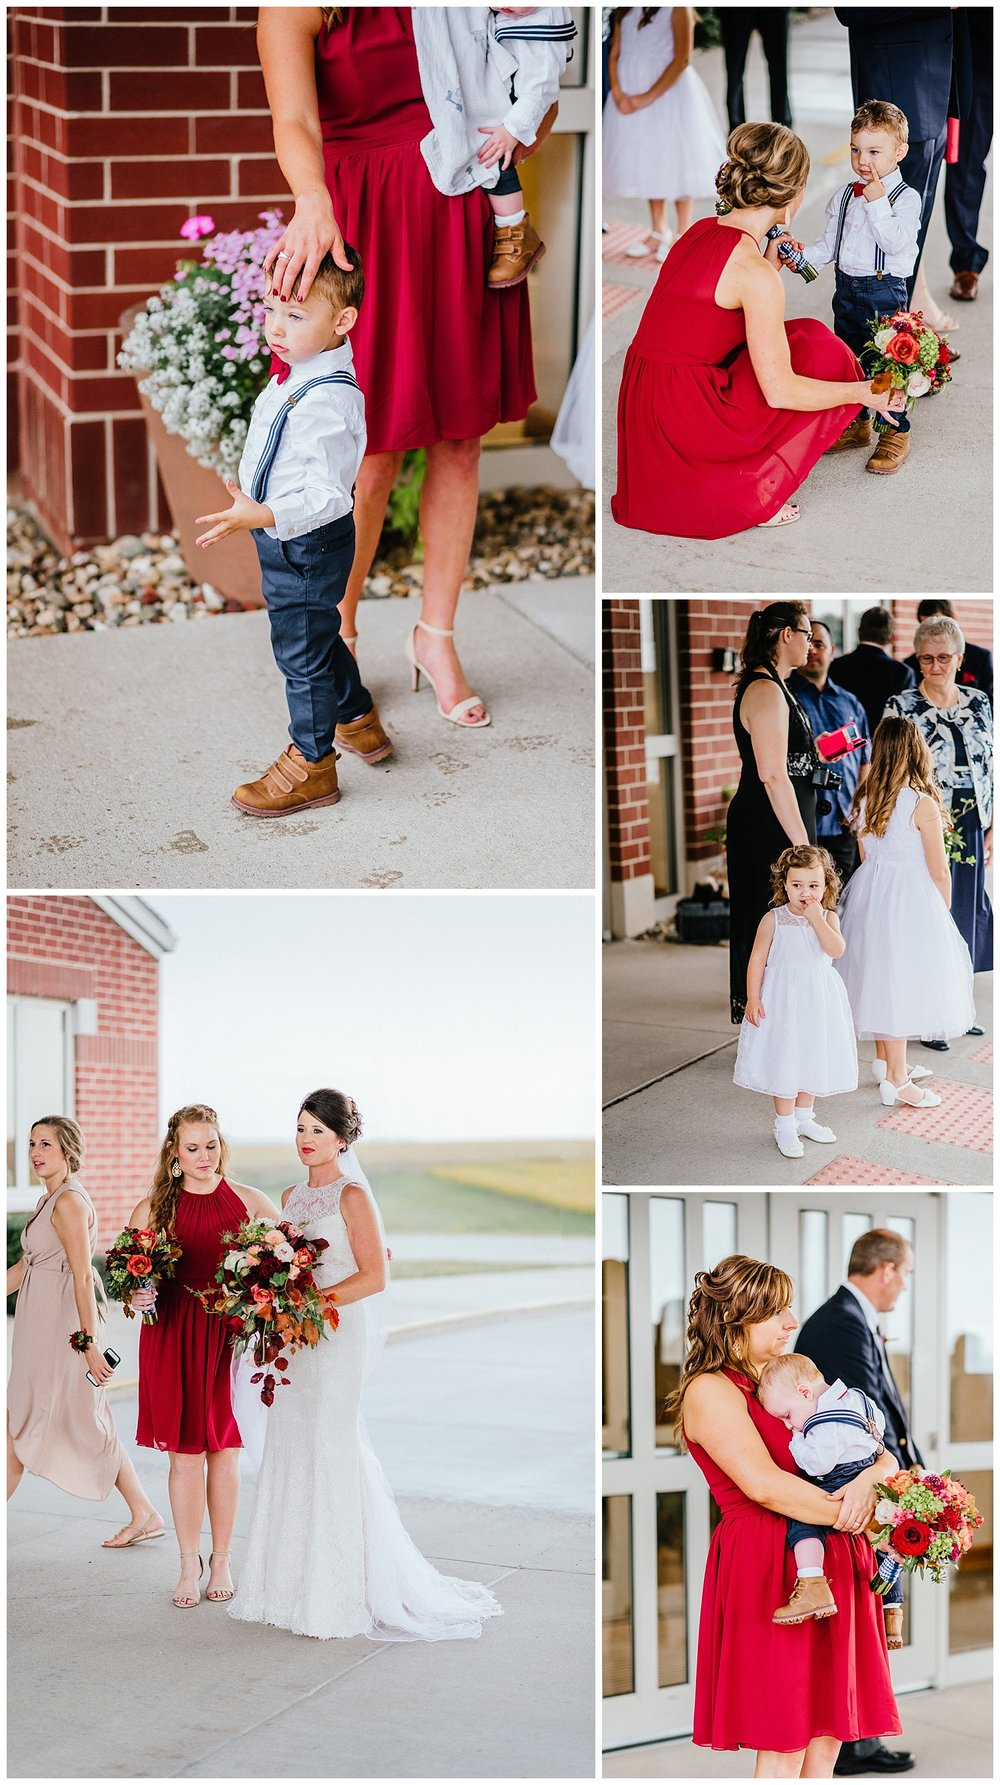 Nicole Corrine Iowa Wedding Photographer Traer Memorial Building Reception Fall Wedding 27.jpg